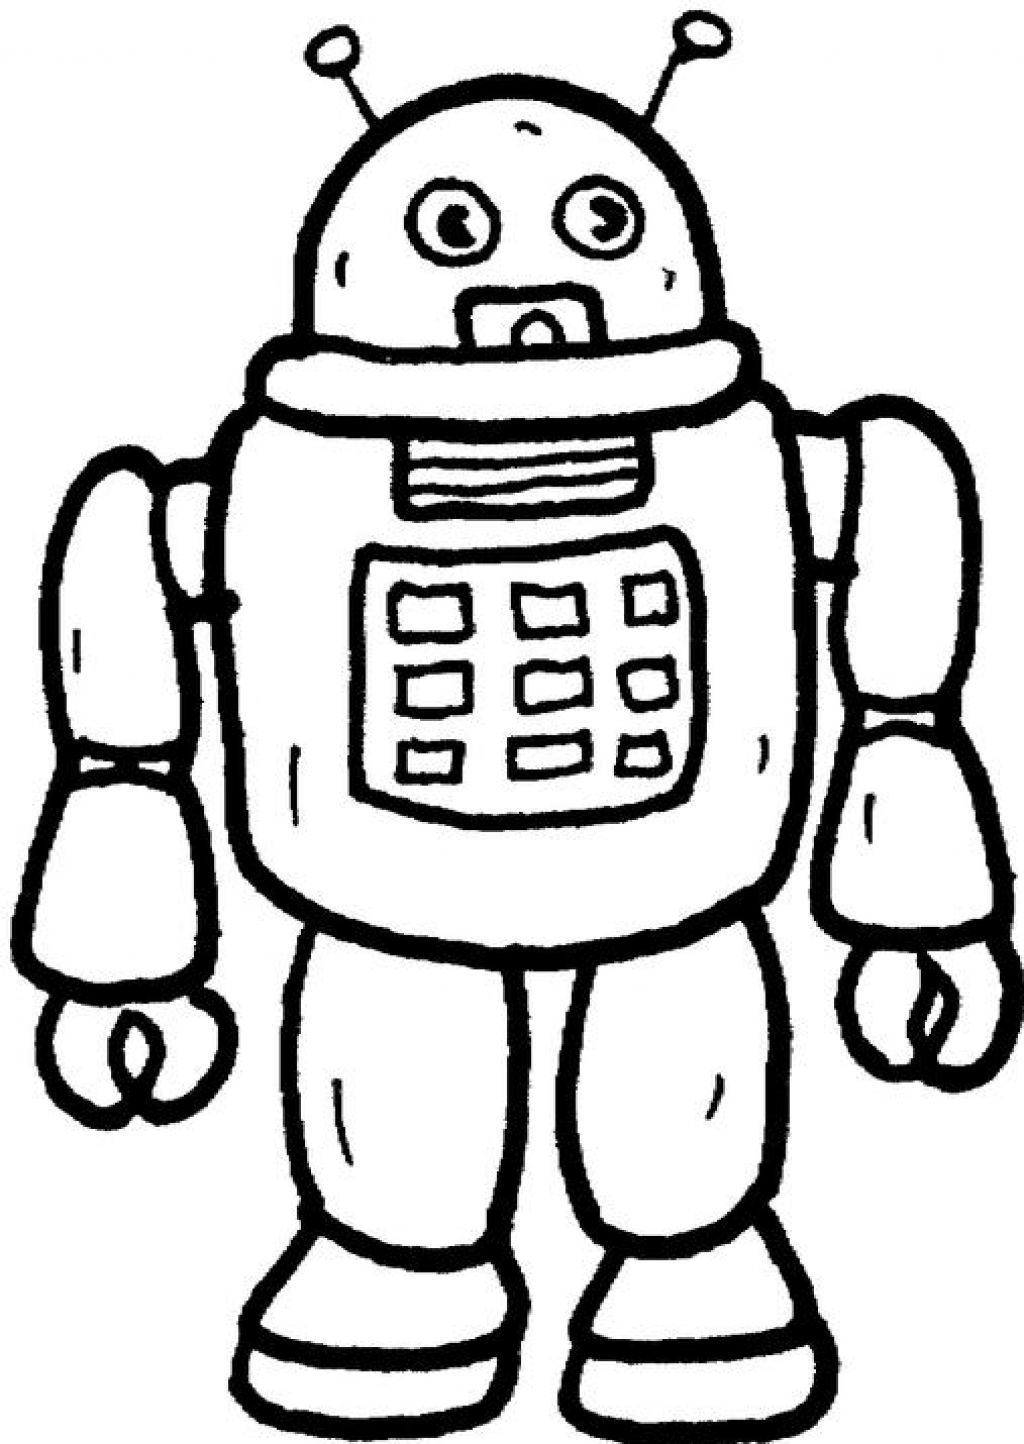 1024x1444 Download Coloring Pages. Robot Coloring Pages Robot Coloring